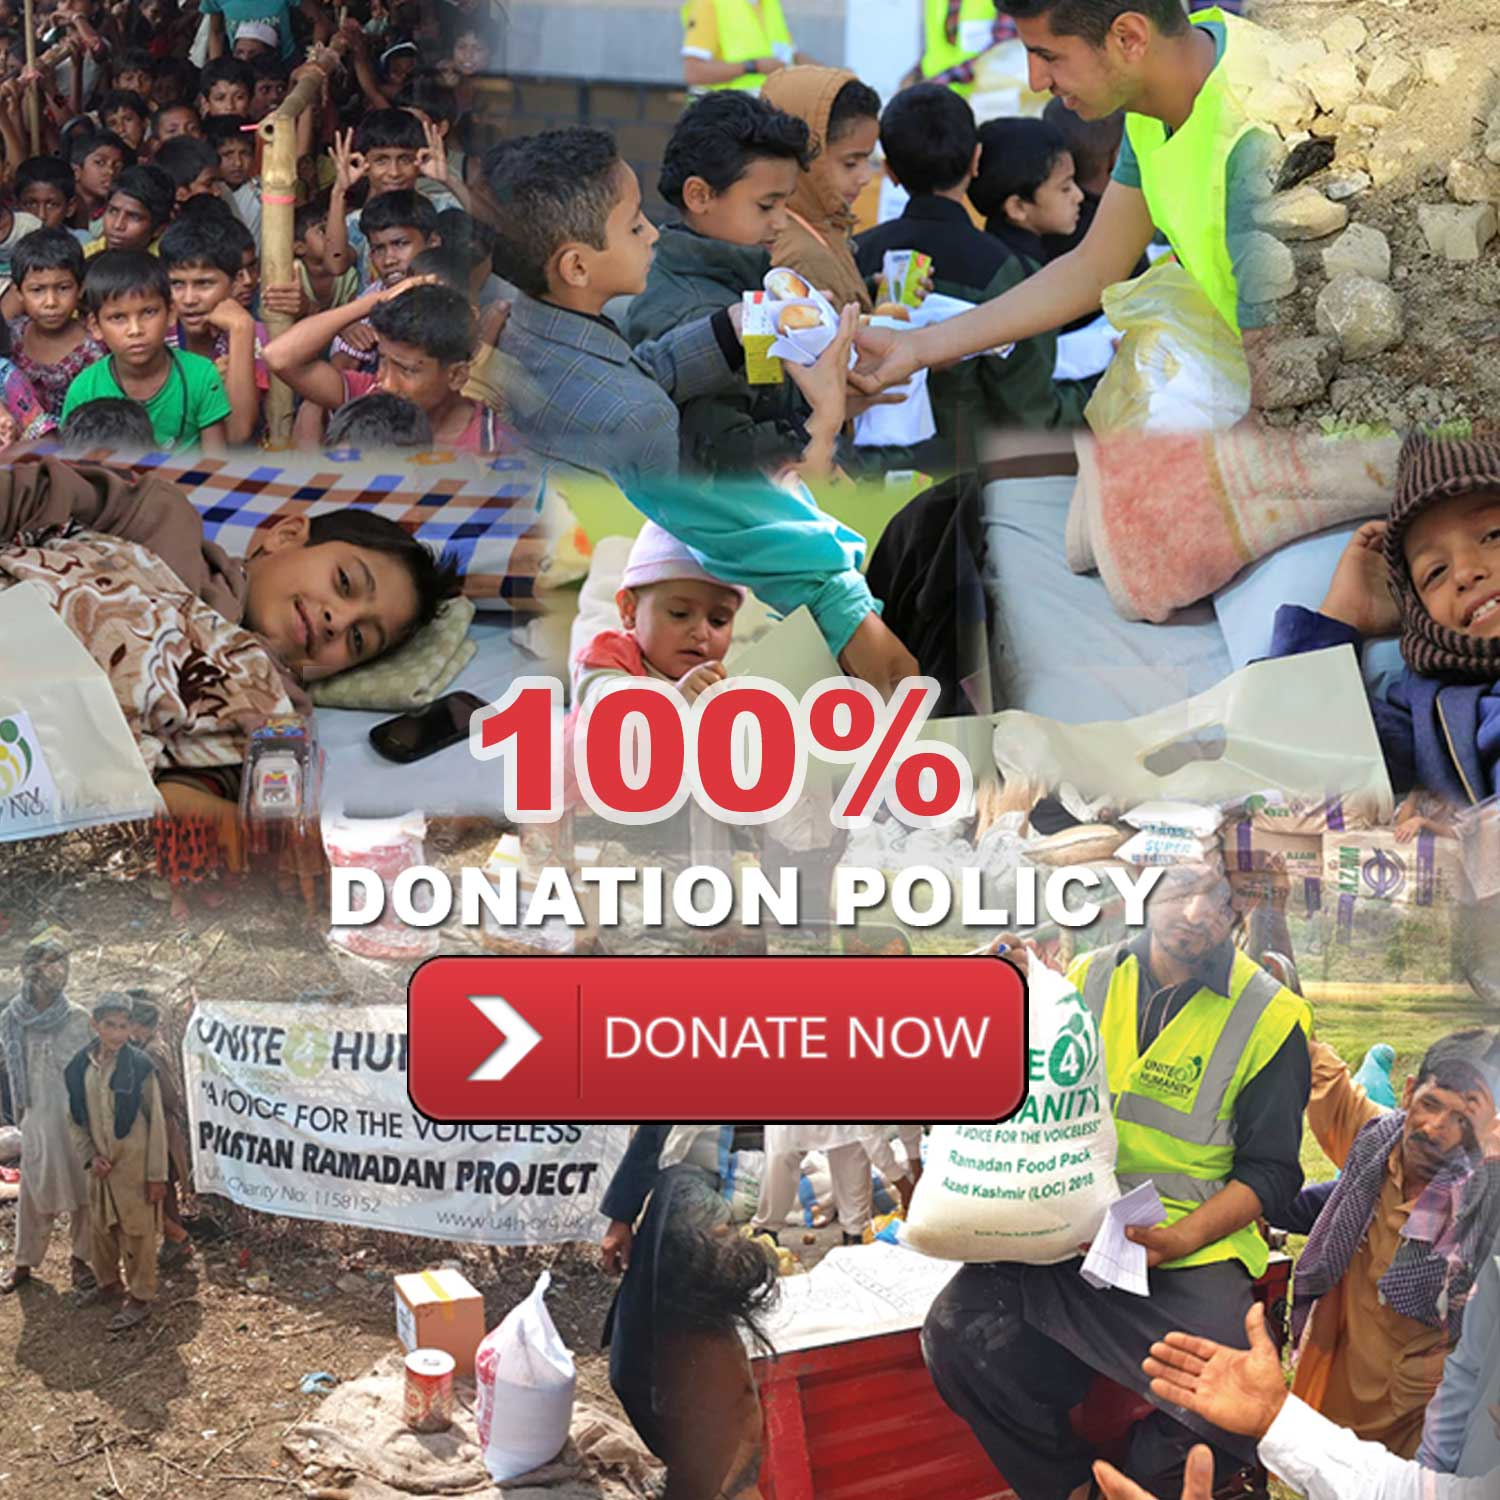 Donate for 100% Donation Policy Charity